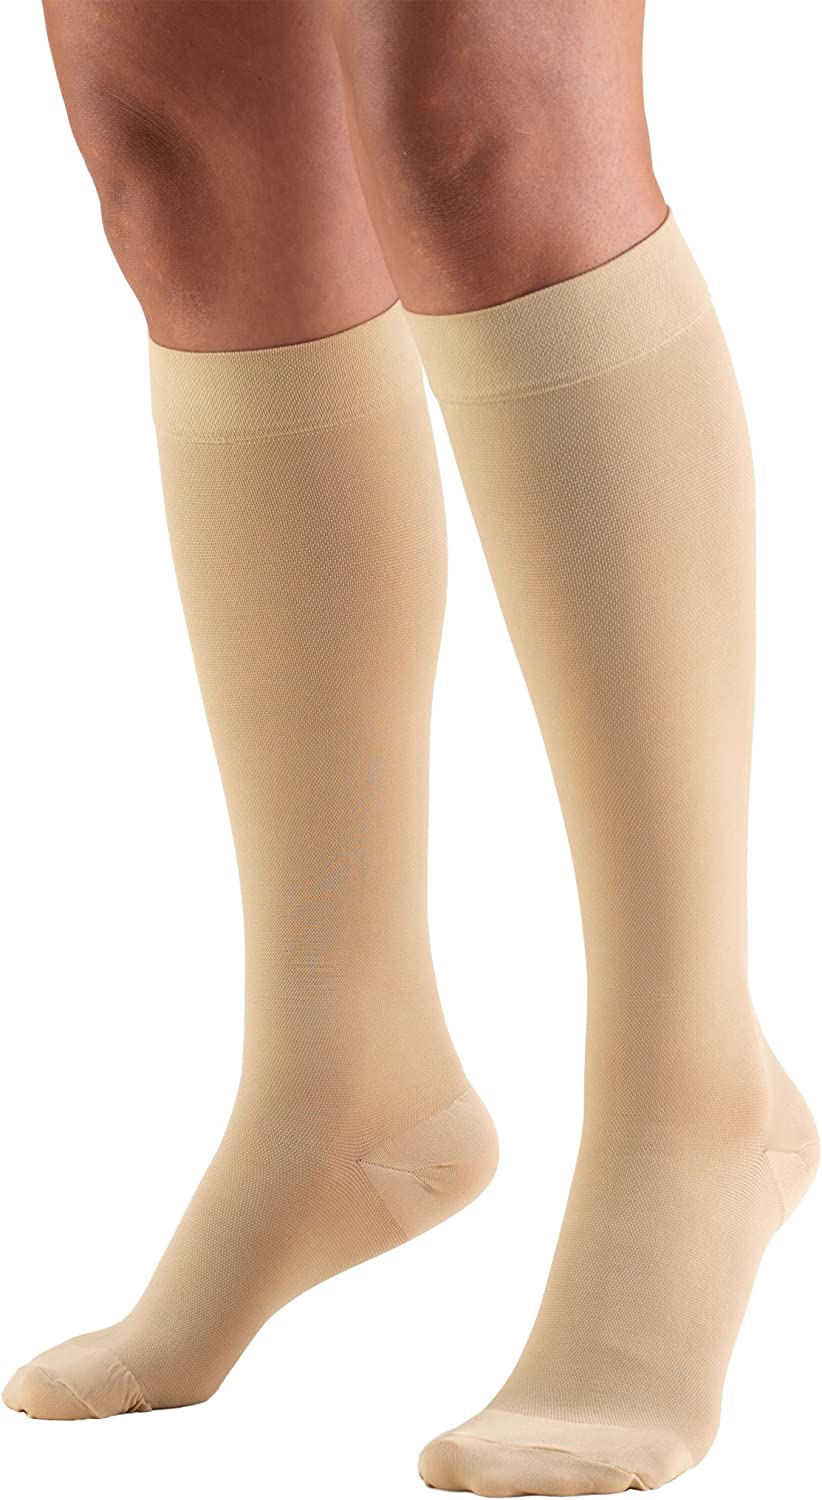 B000A33FYK Truform 20-30 mmHg Compression Stockings for Men and Women, Knee High Length, Closed Toe, Beige, Large 81Th2zJVx2L